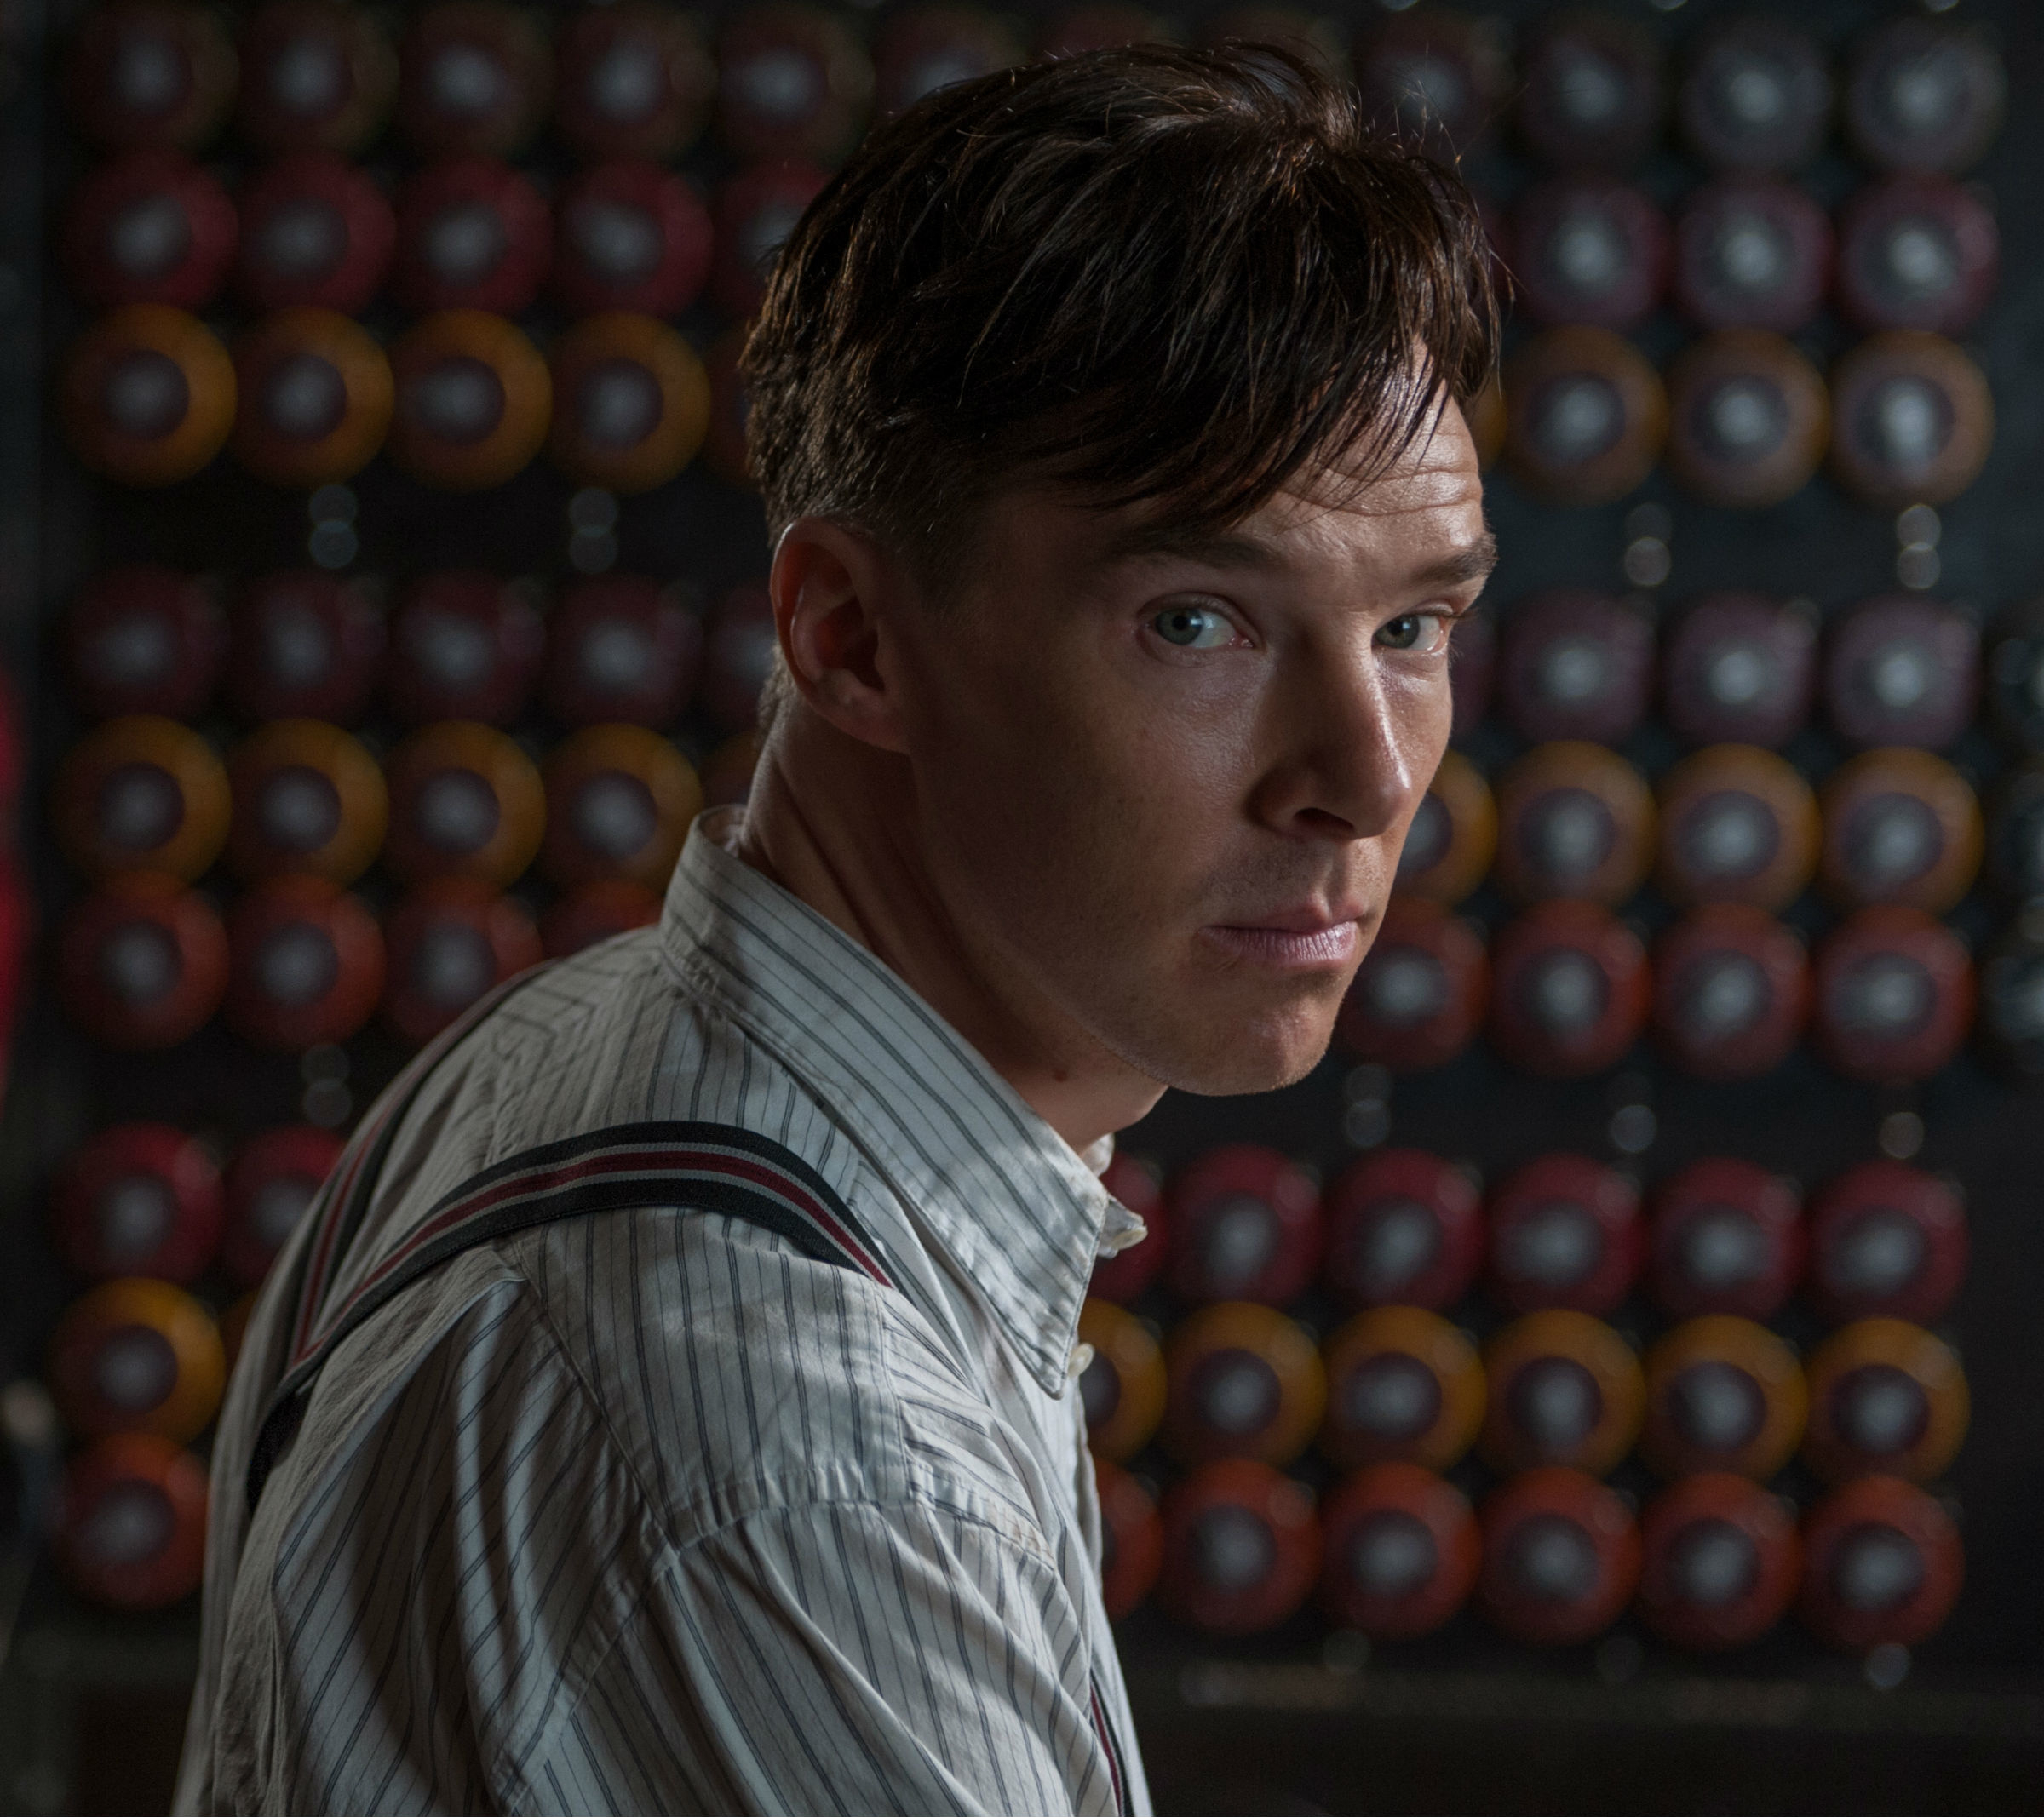 the_imitation_game_benedict_cumberbatch_image3.jpg